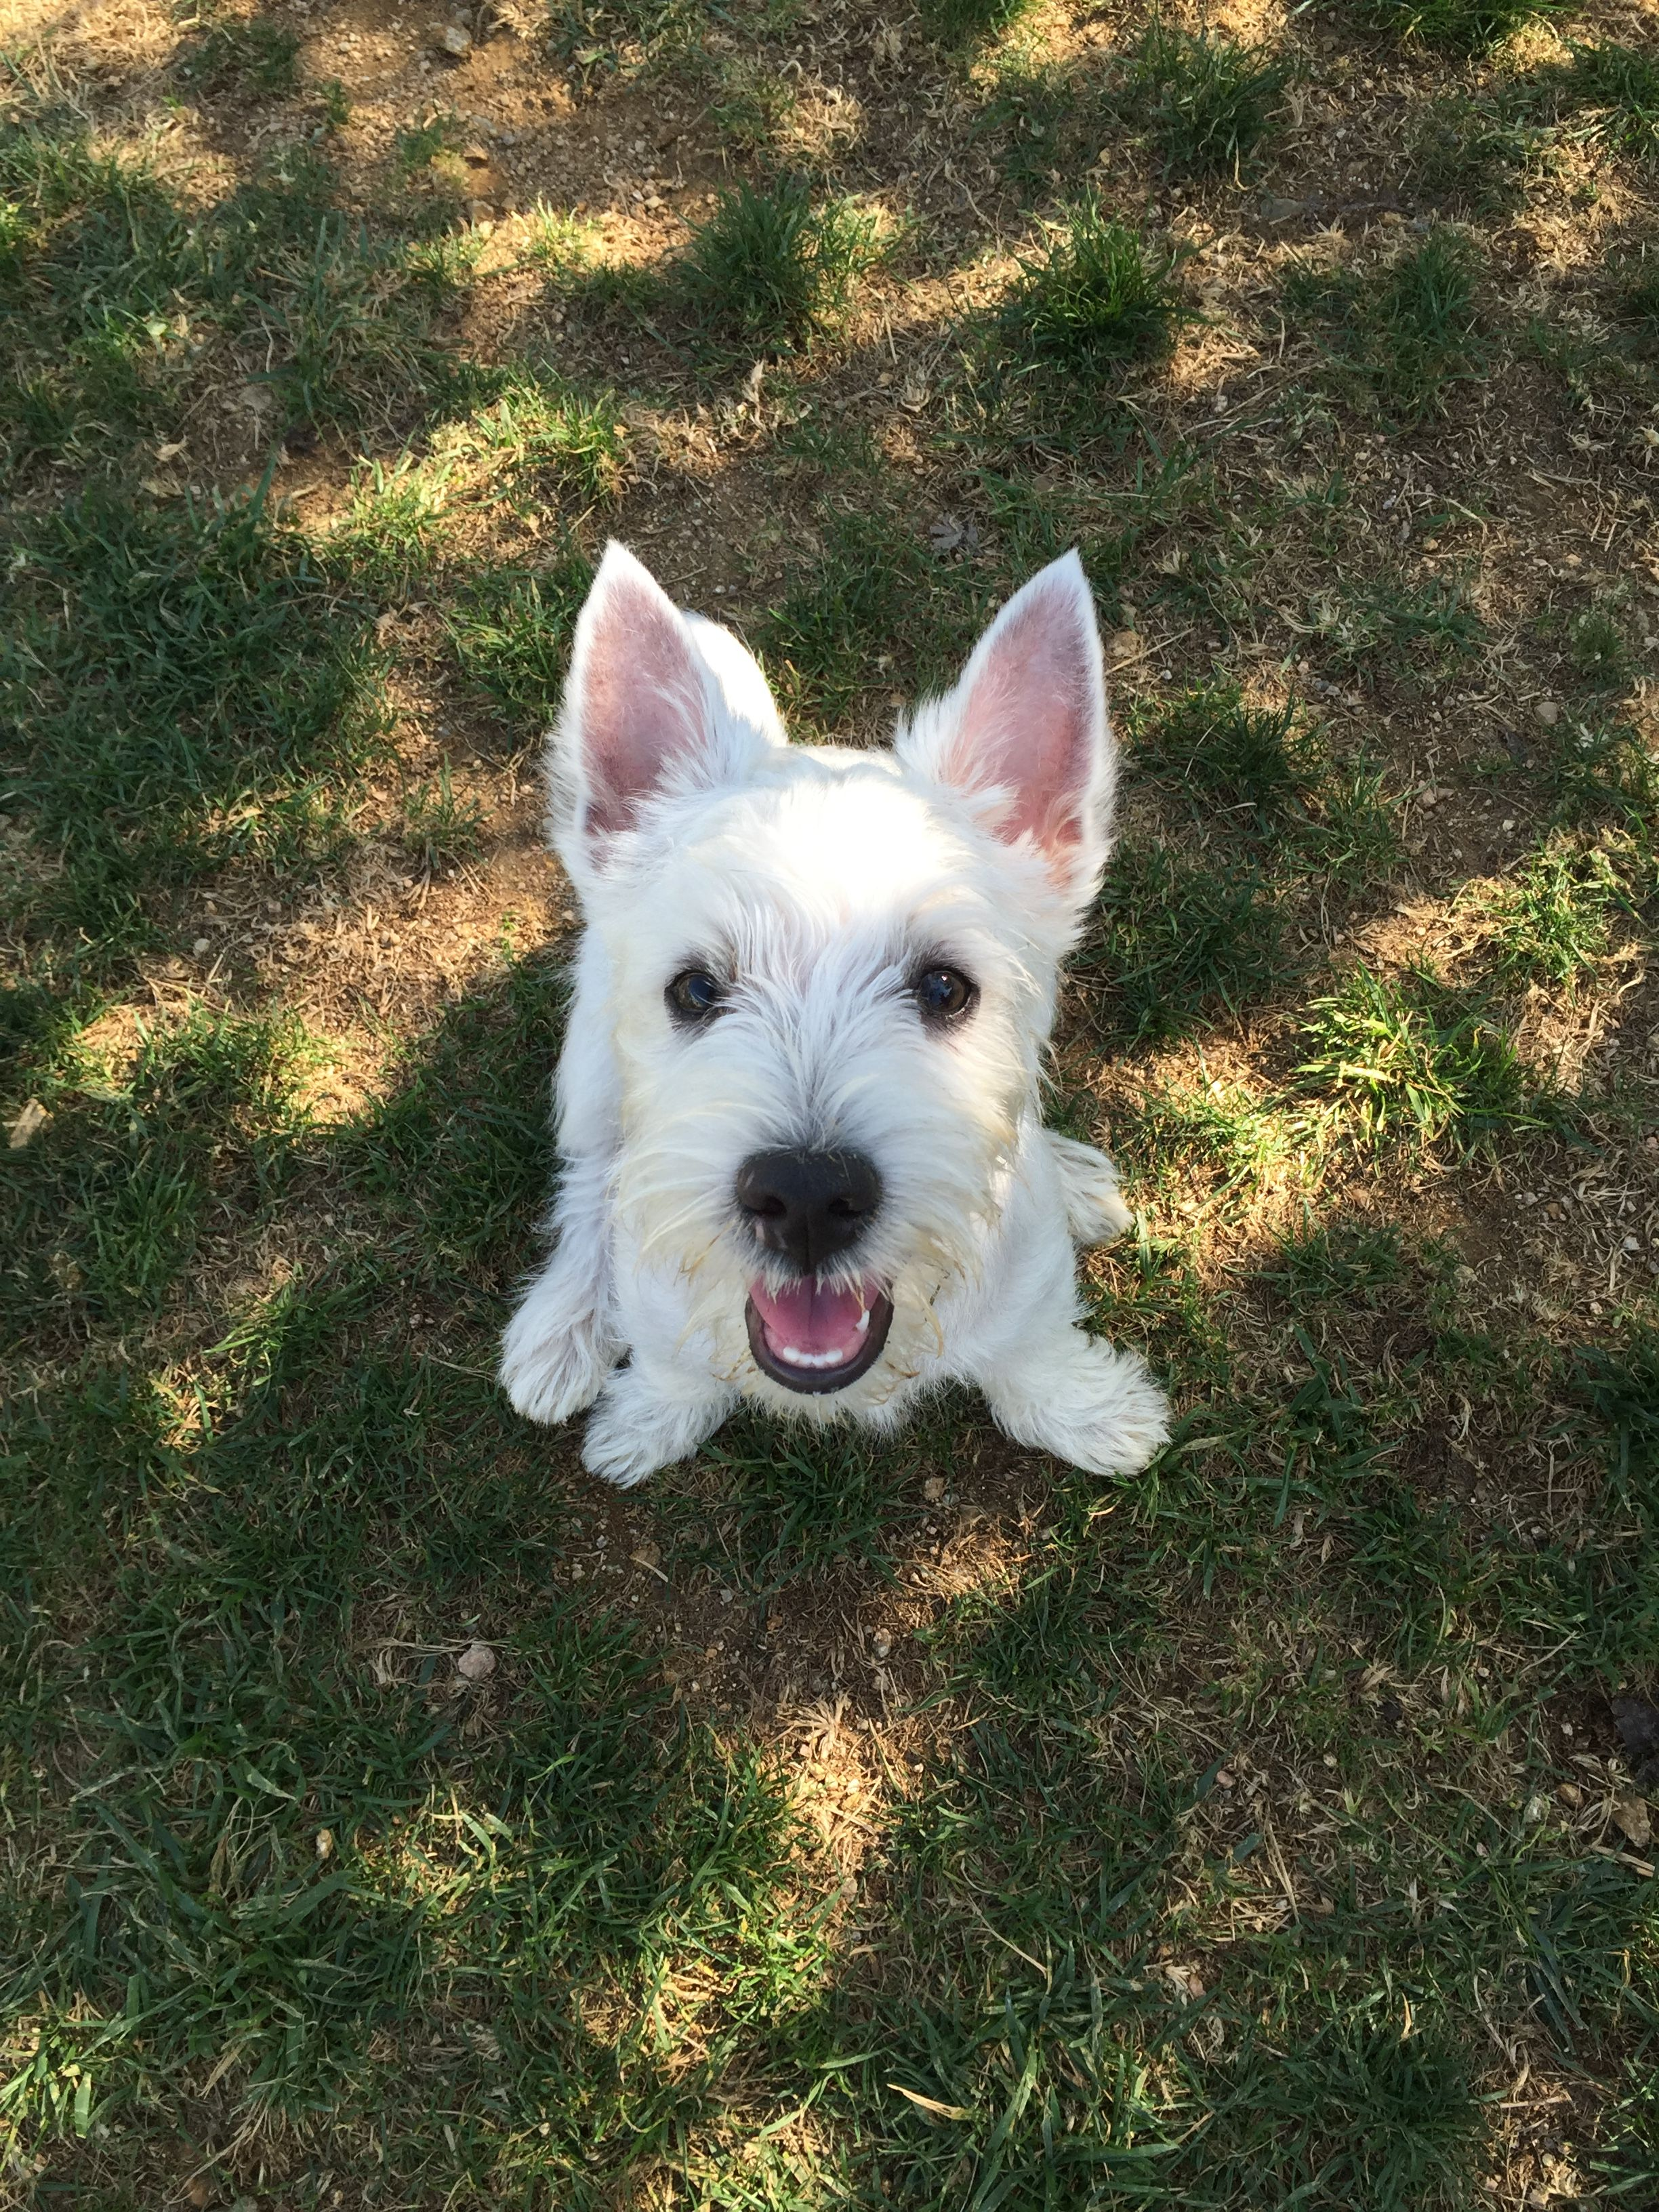 Pin by Waverly Mayer on Puppies!!! Westie puppies, Puppy